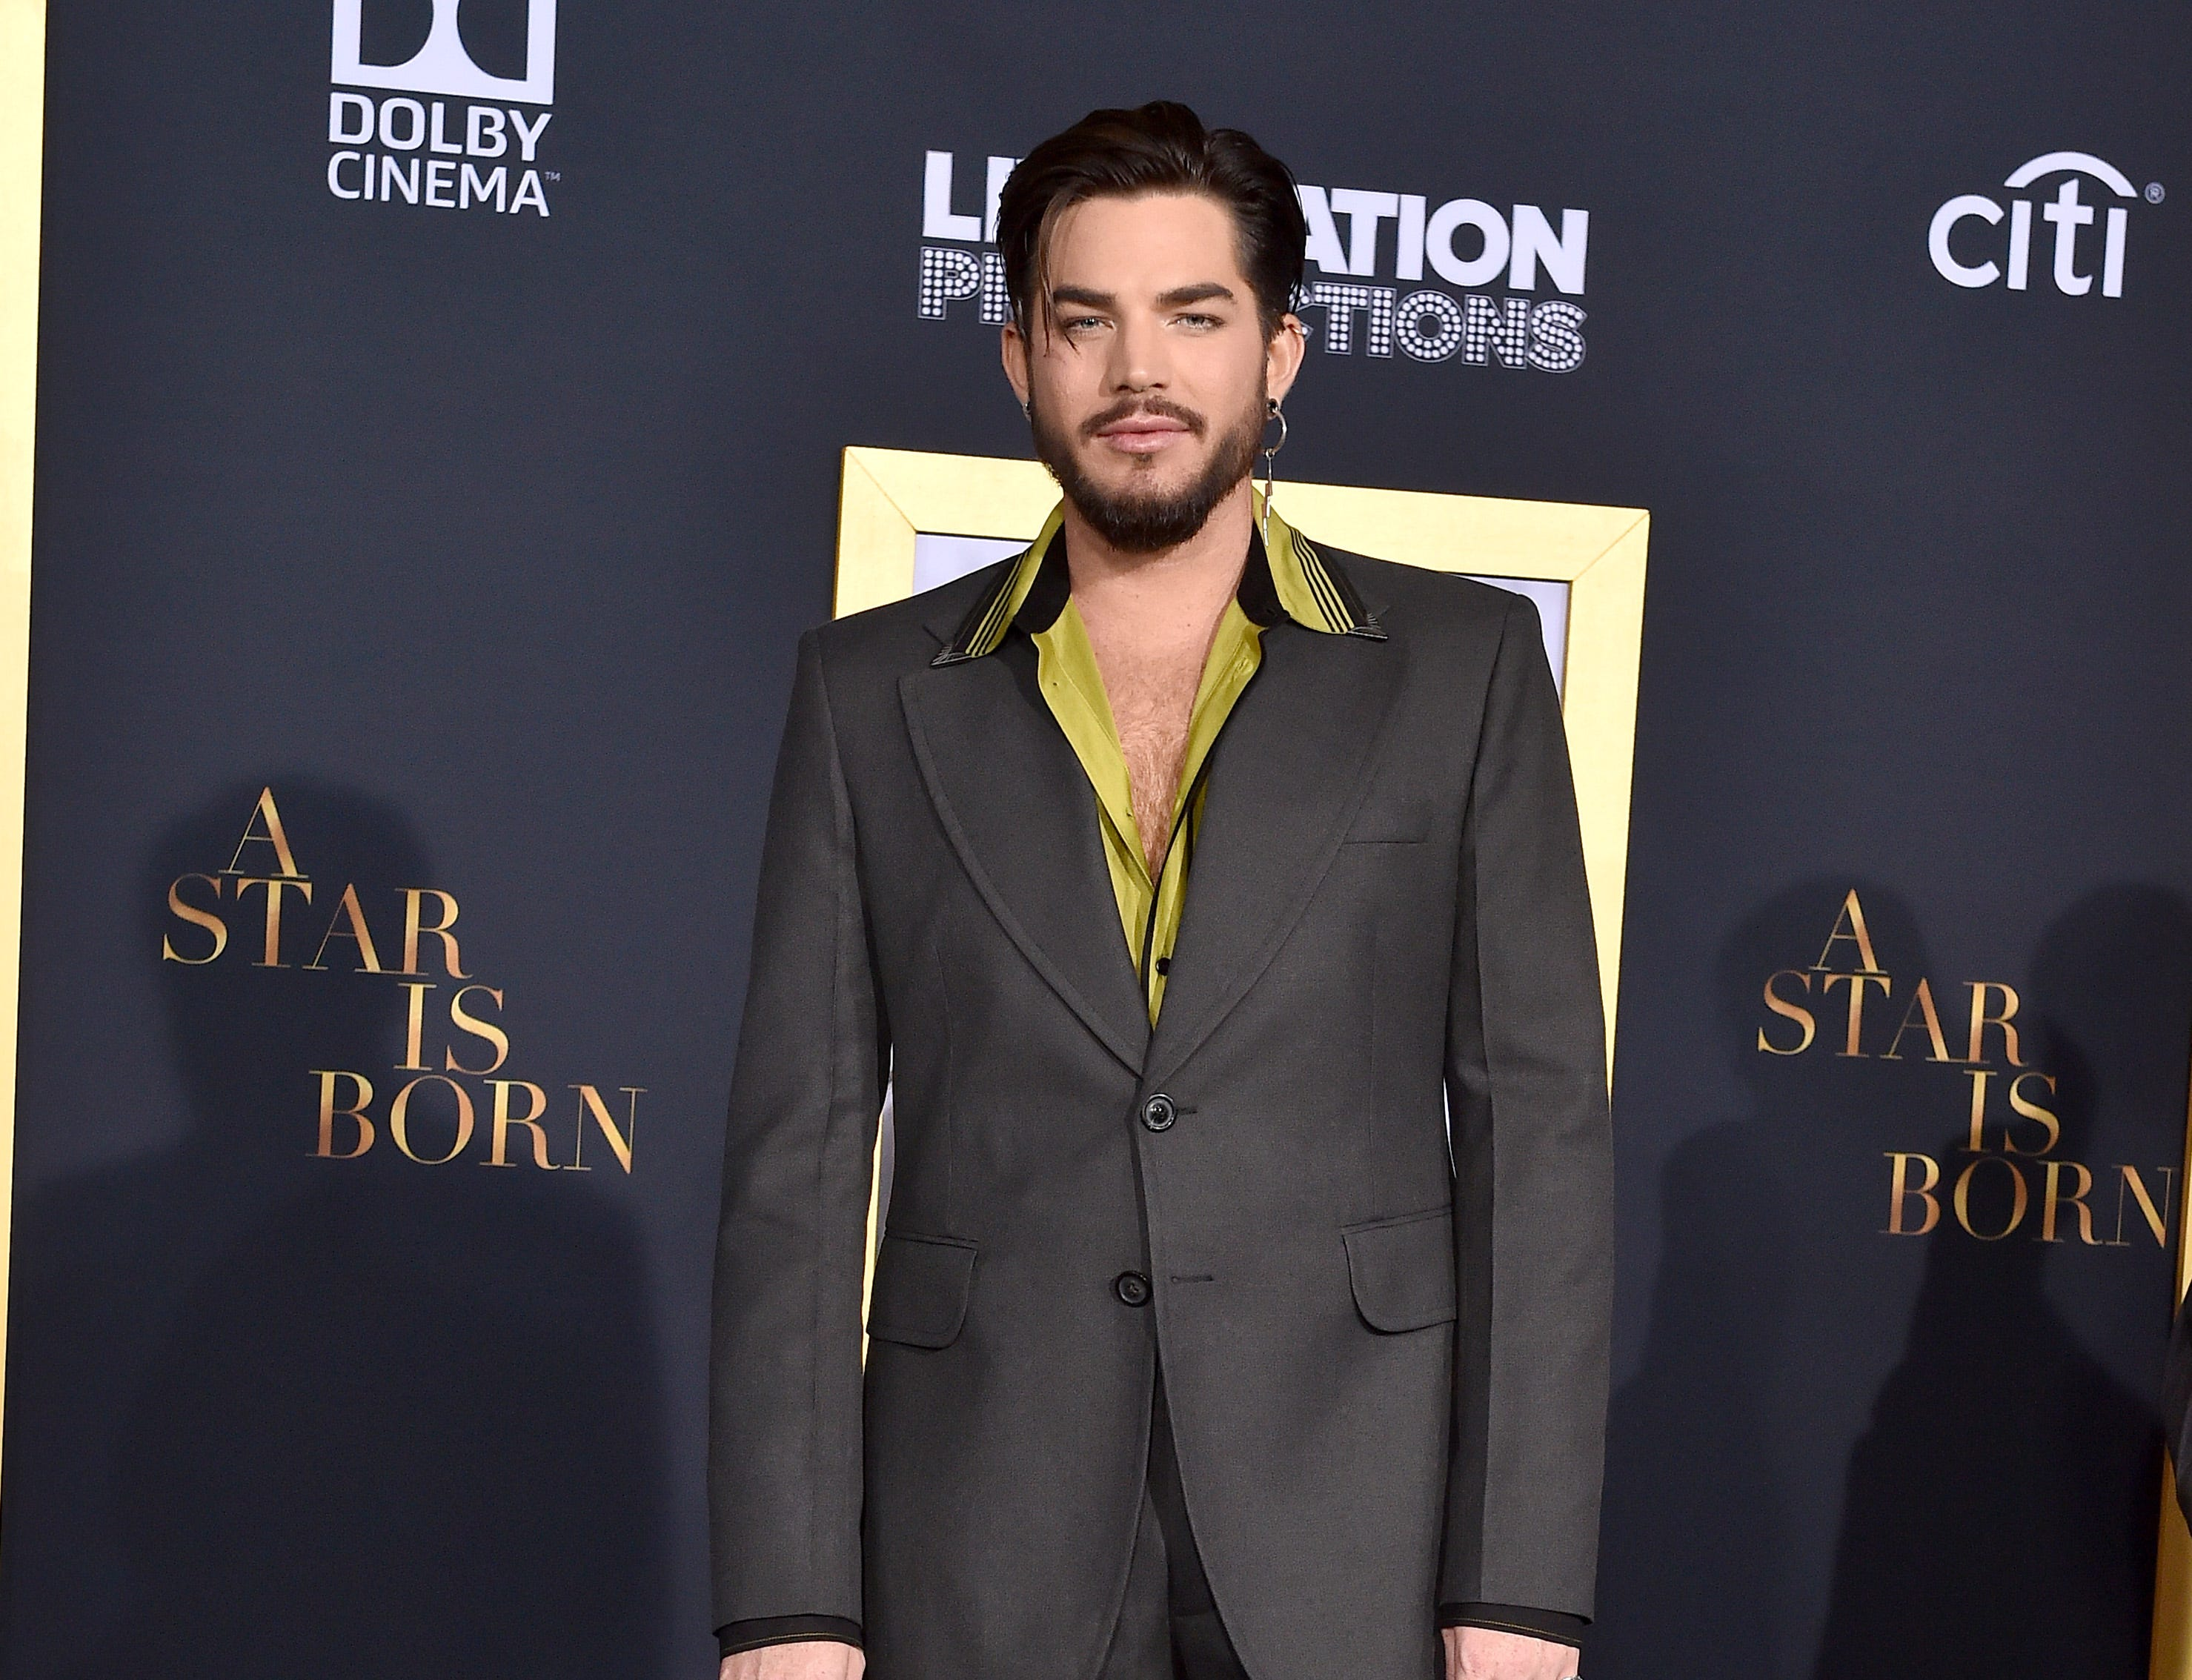 LOS ANGELES, CA - SEPTEMBER 24:  Adam Lambert  attends the premiere of Warner Bros. Pictures' 'A Star Is Born' at The Shrine Auditorium on September 24, 2018 in Los Angeles, California.  (Photo by Axelle/Bauer-Griffin/FilmMagic) ORG XMIT: 775229470 ORIG FILE ID: 1039815720